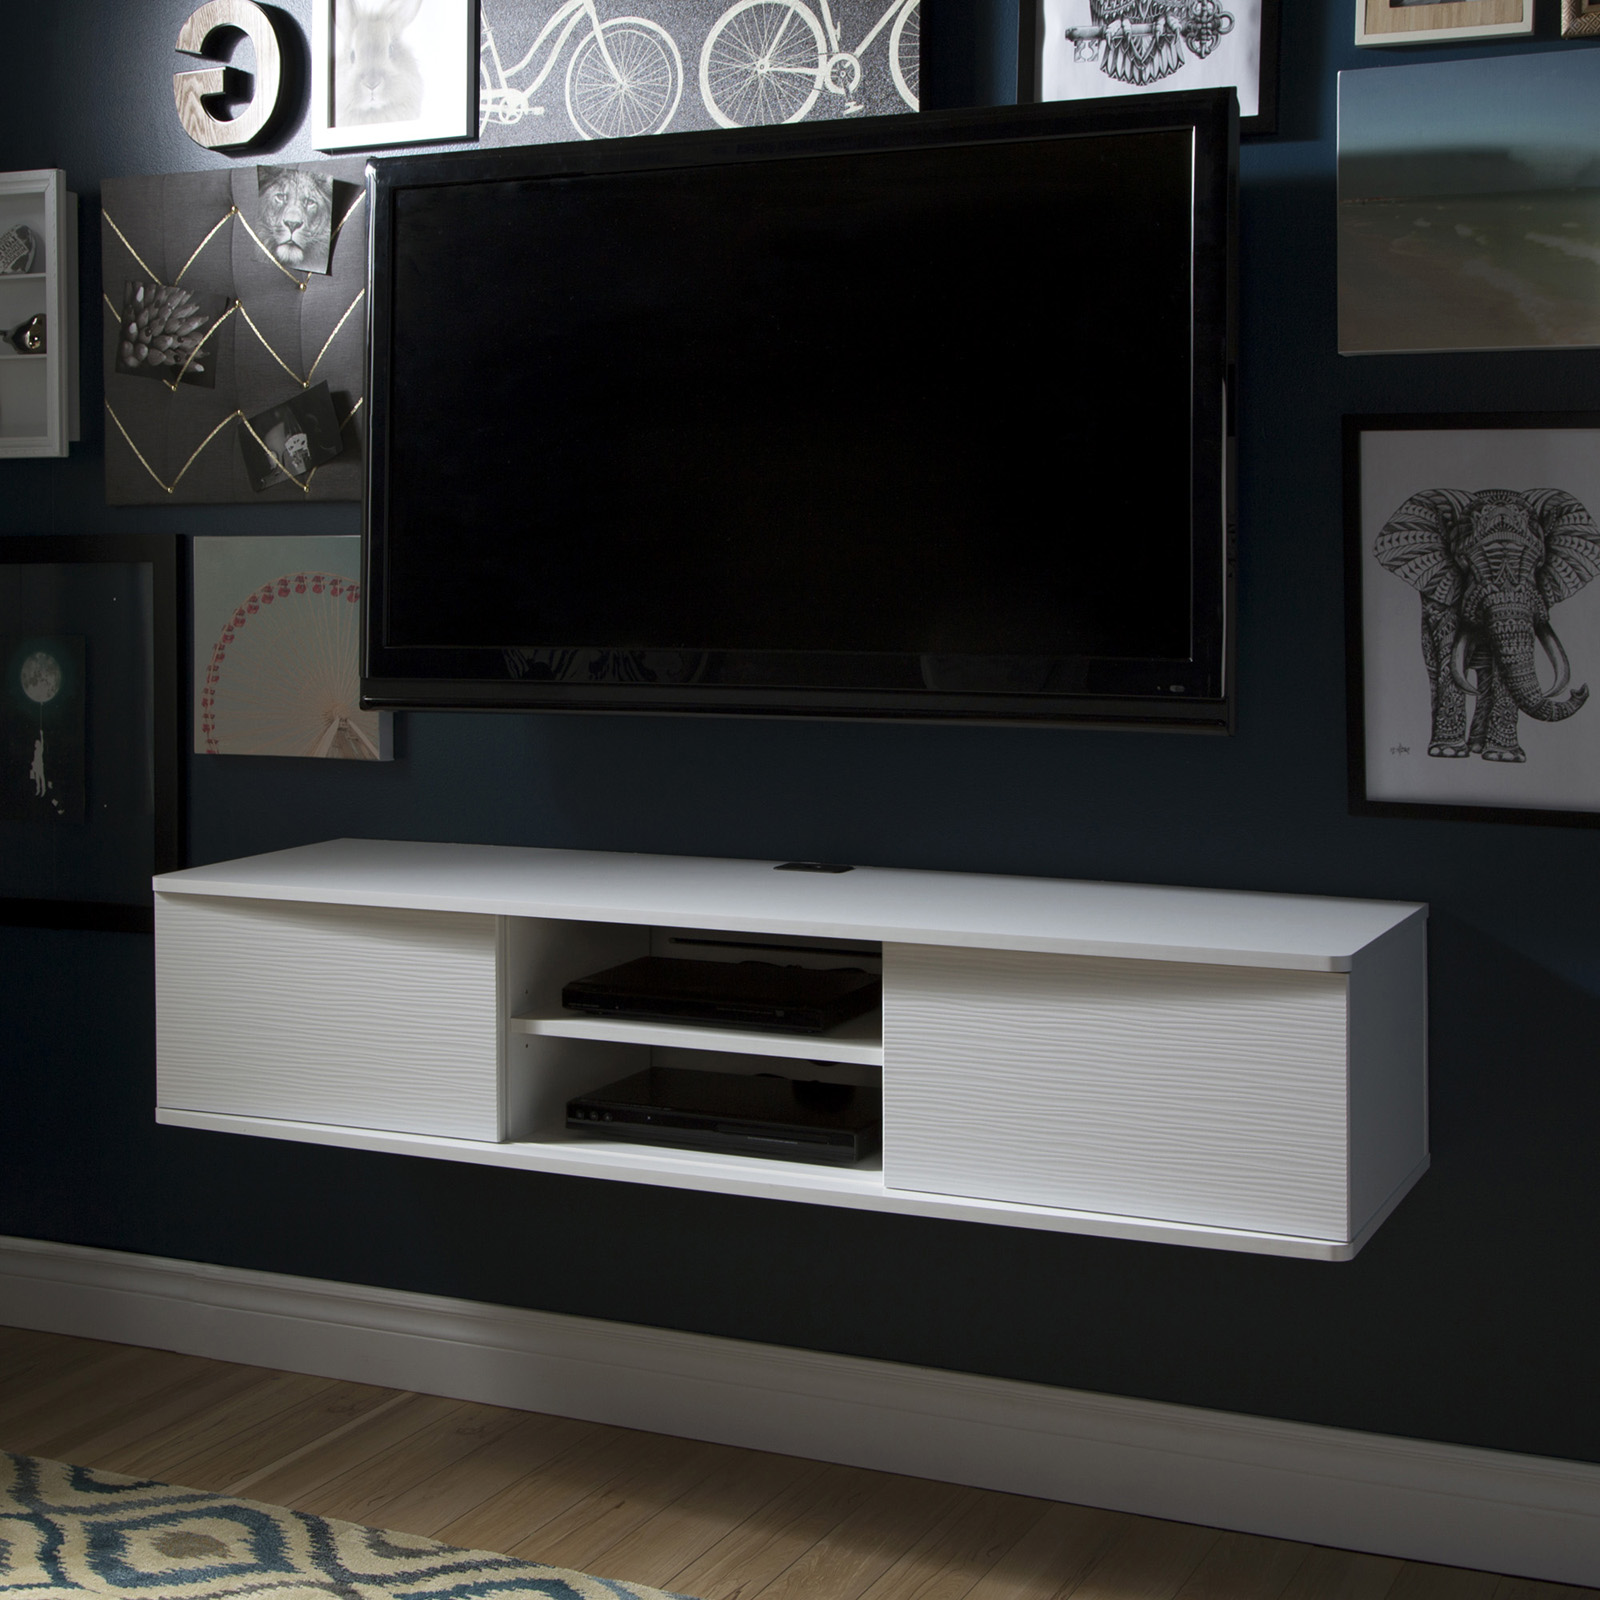 wall mounted media console hayneedle